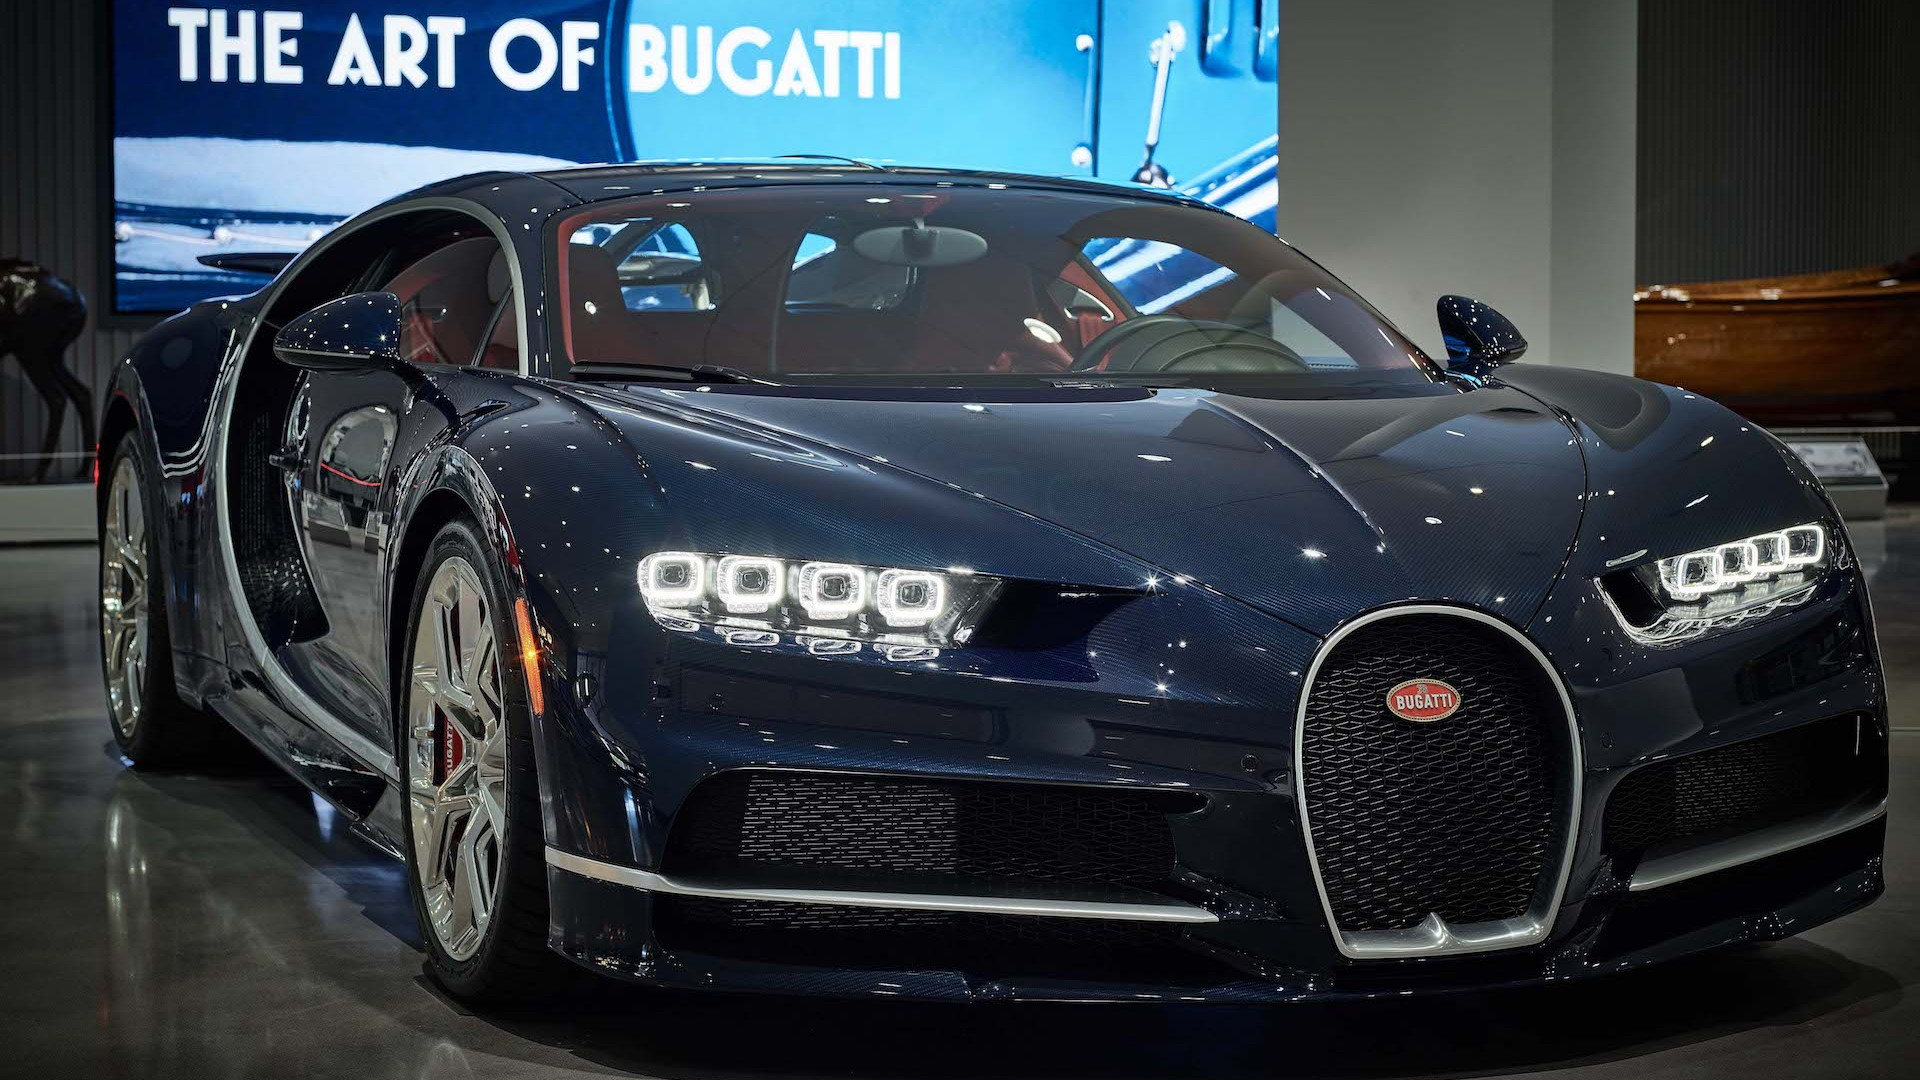 The Art of Bugatti at Petersen Museum